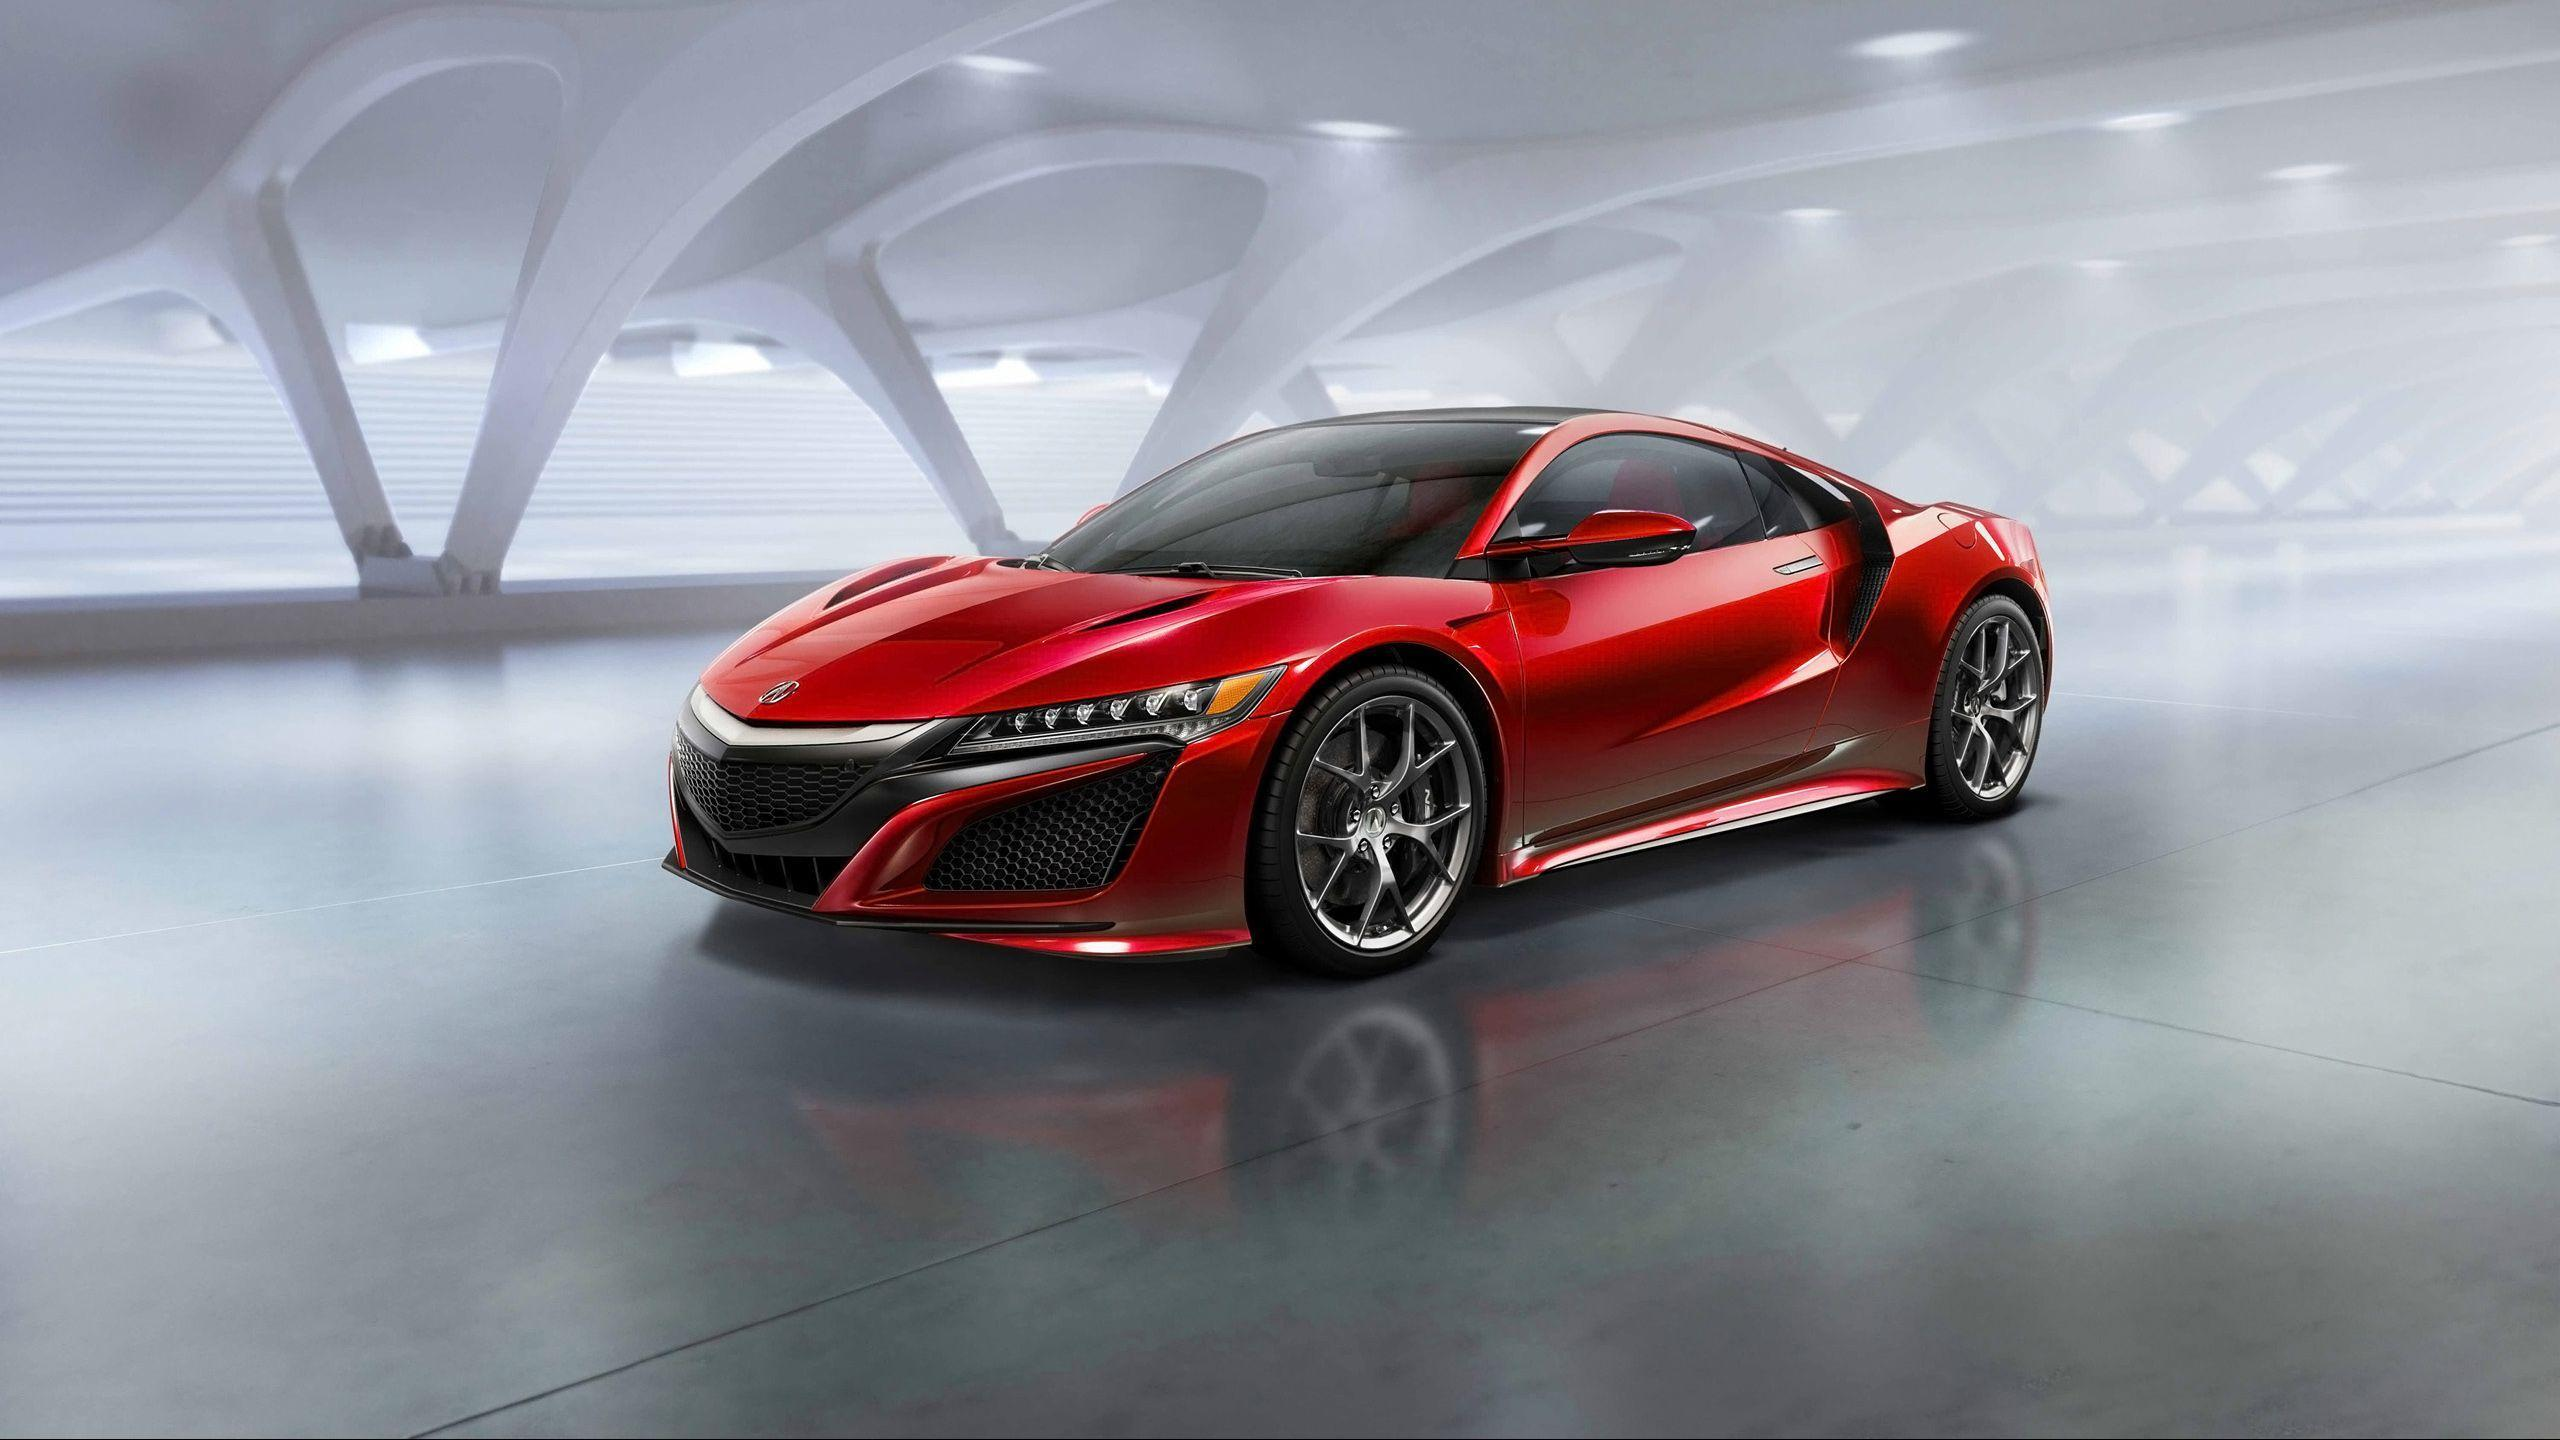 Acura NSX 2016 HD wallpapers free download